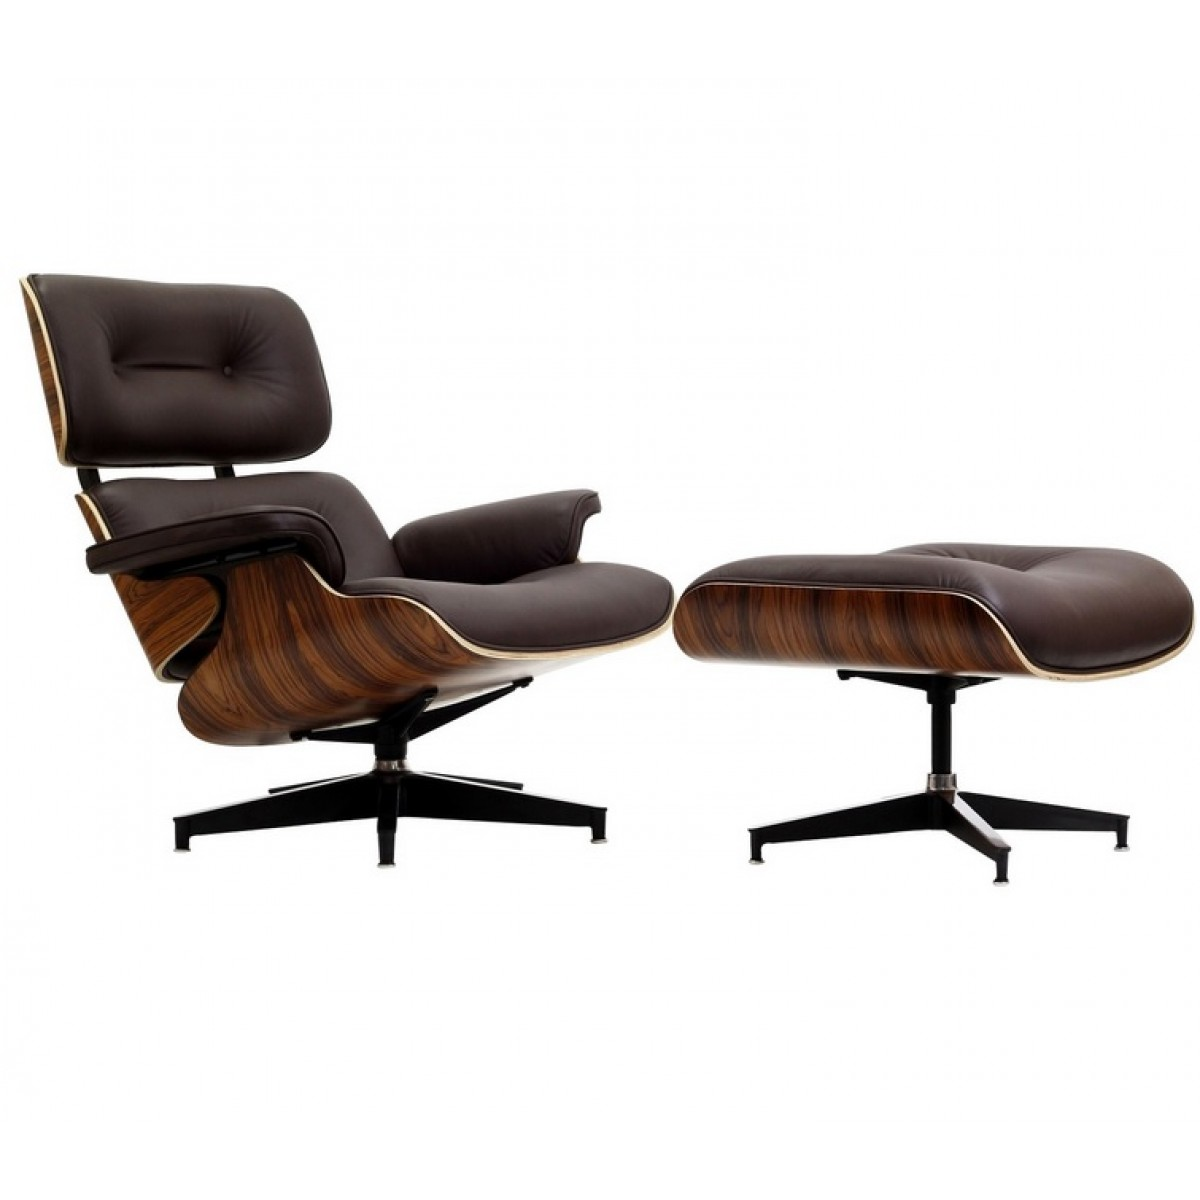 Eames style lounge chair and ottoman brown leather walnut for Eames chair replica uk